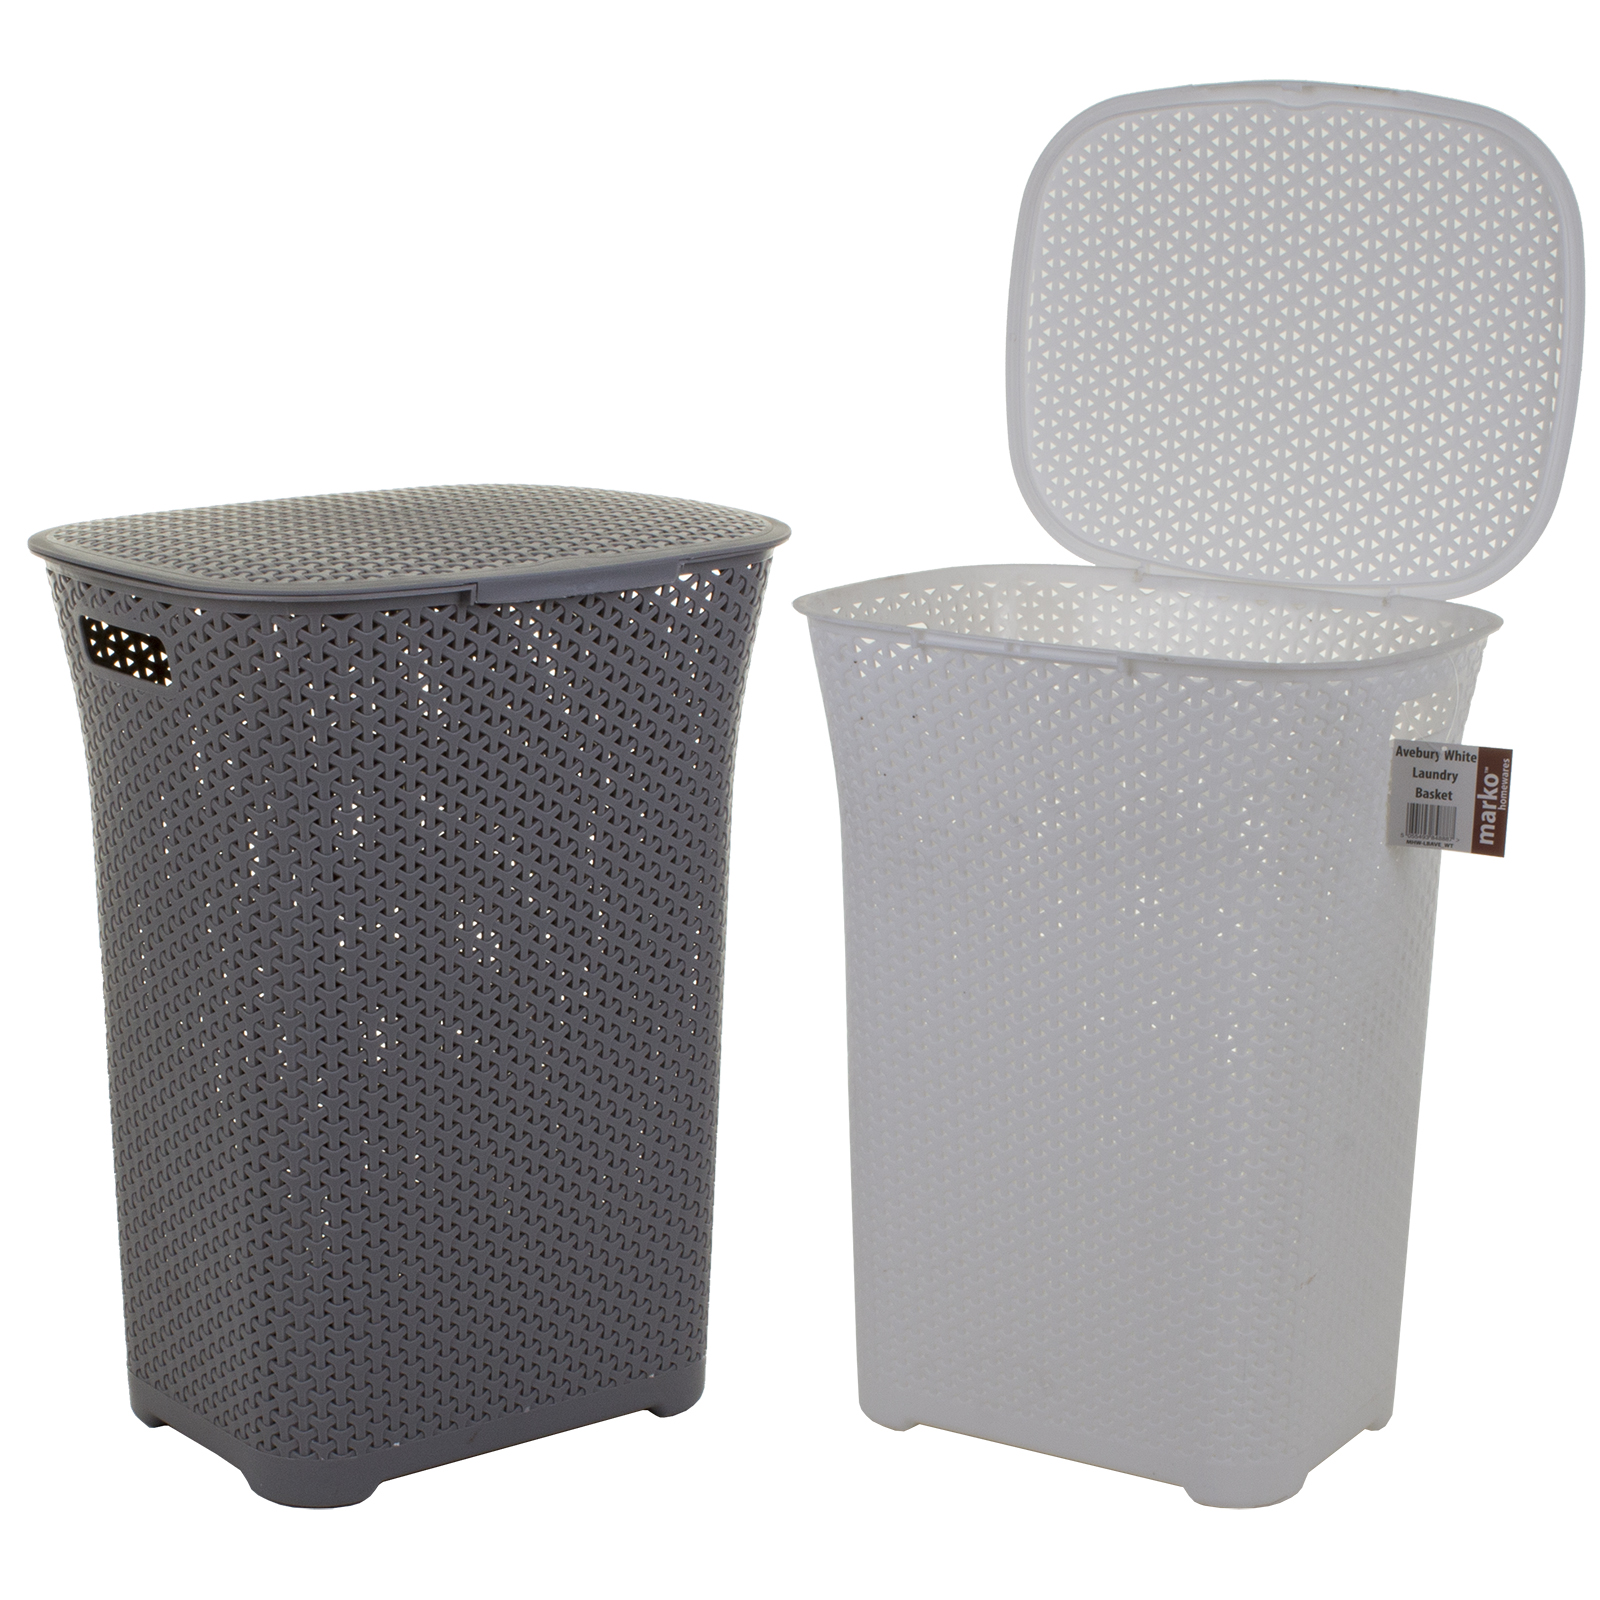 Clothes Baskets Plastic Laundry Basket Clothes Clothing Washing Hamper